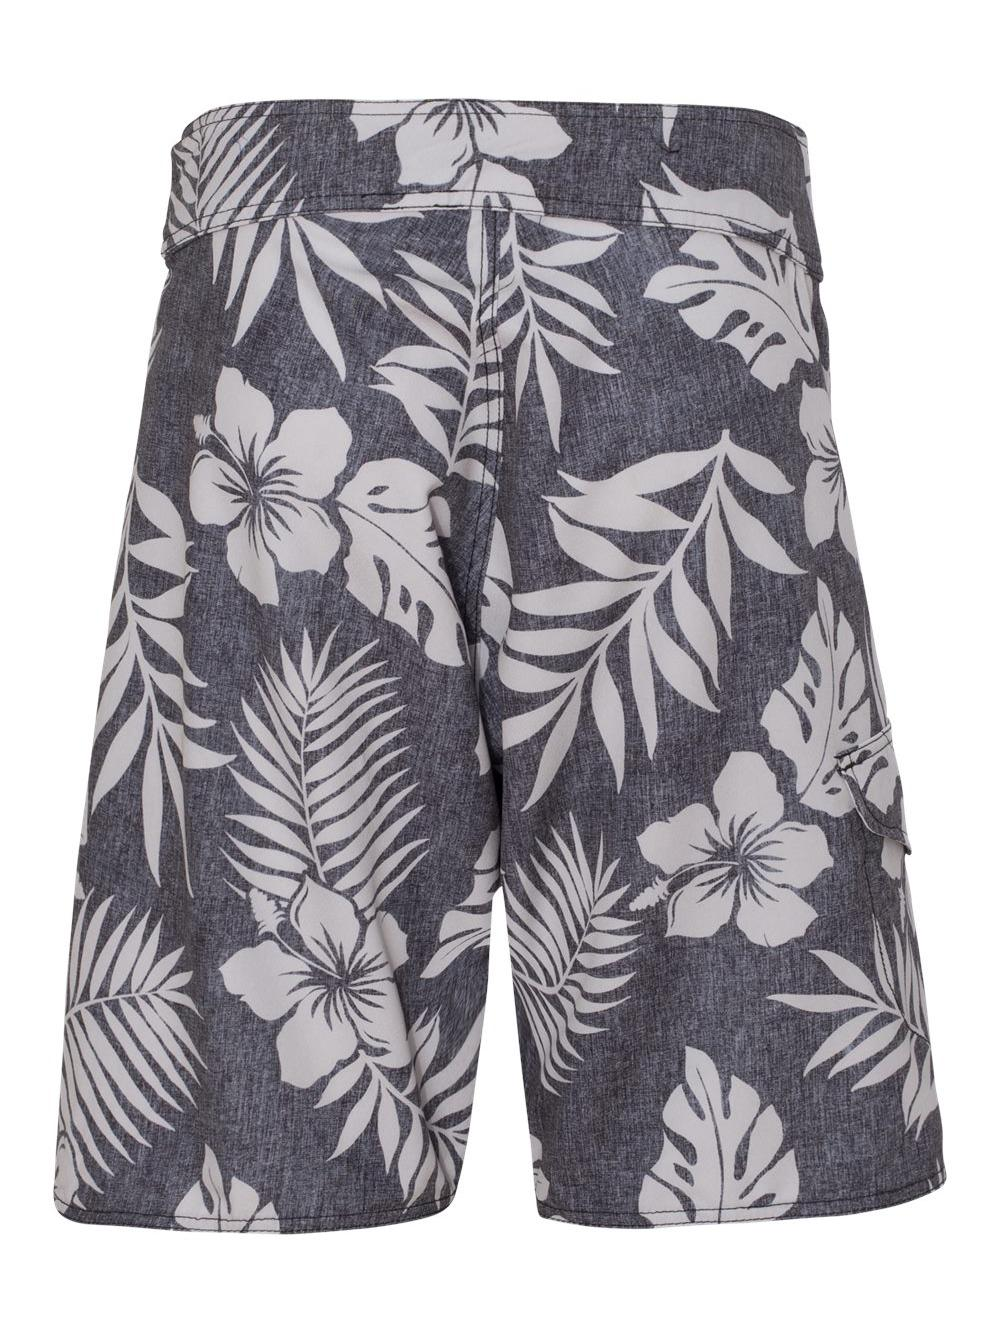 2c1db96eab Burnside B9371 Diamond Dobby Board Shorts 38 Floral for sale online ...